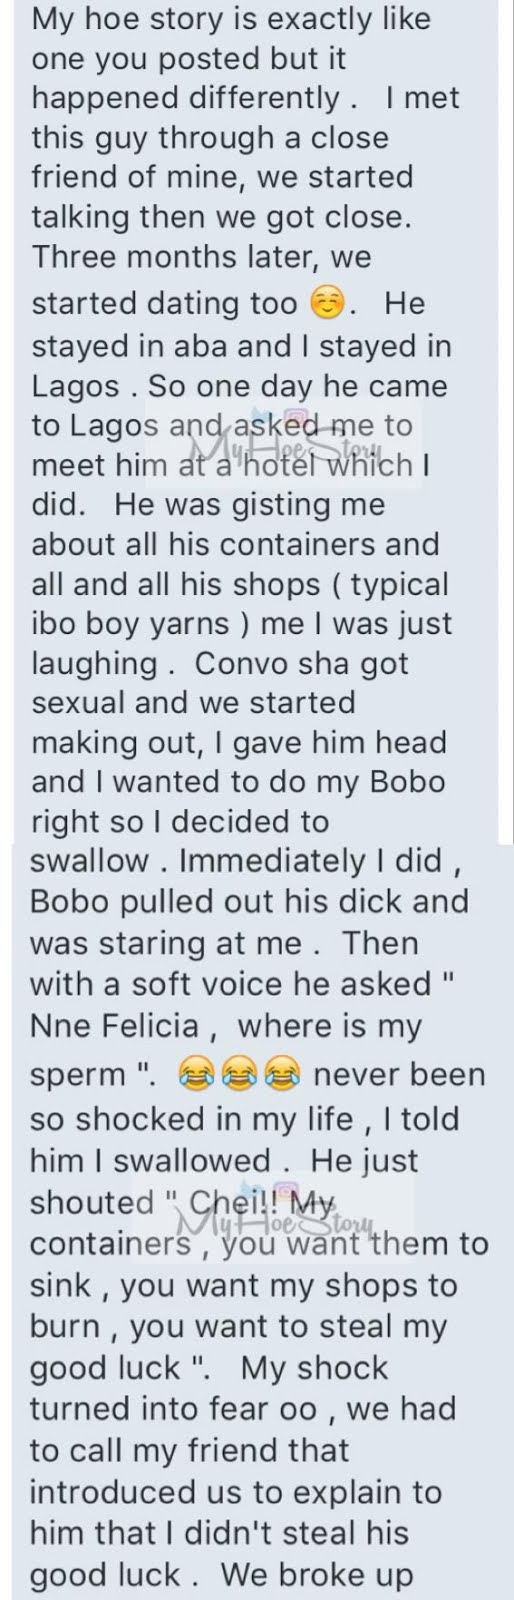 Nne, where is my fluid? Puzzled man asks female lover after BJ session